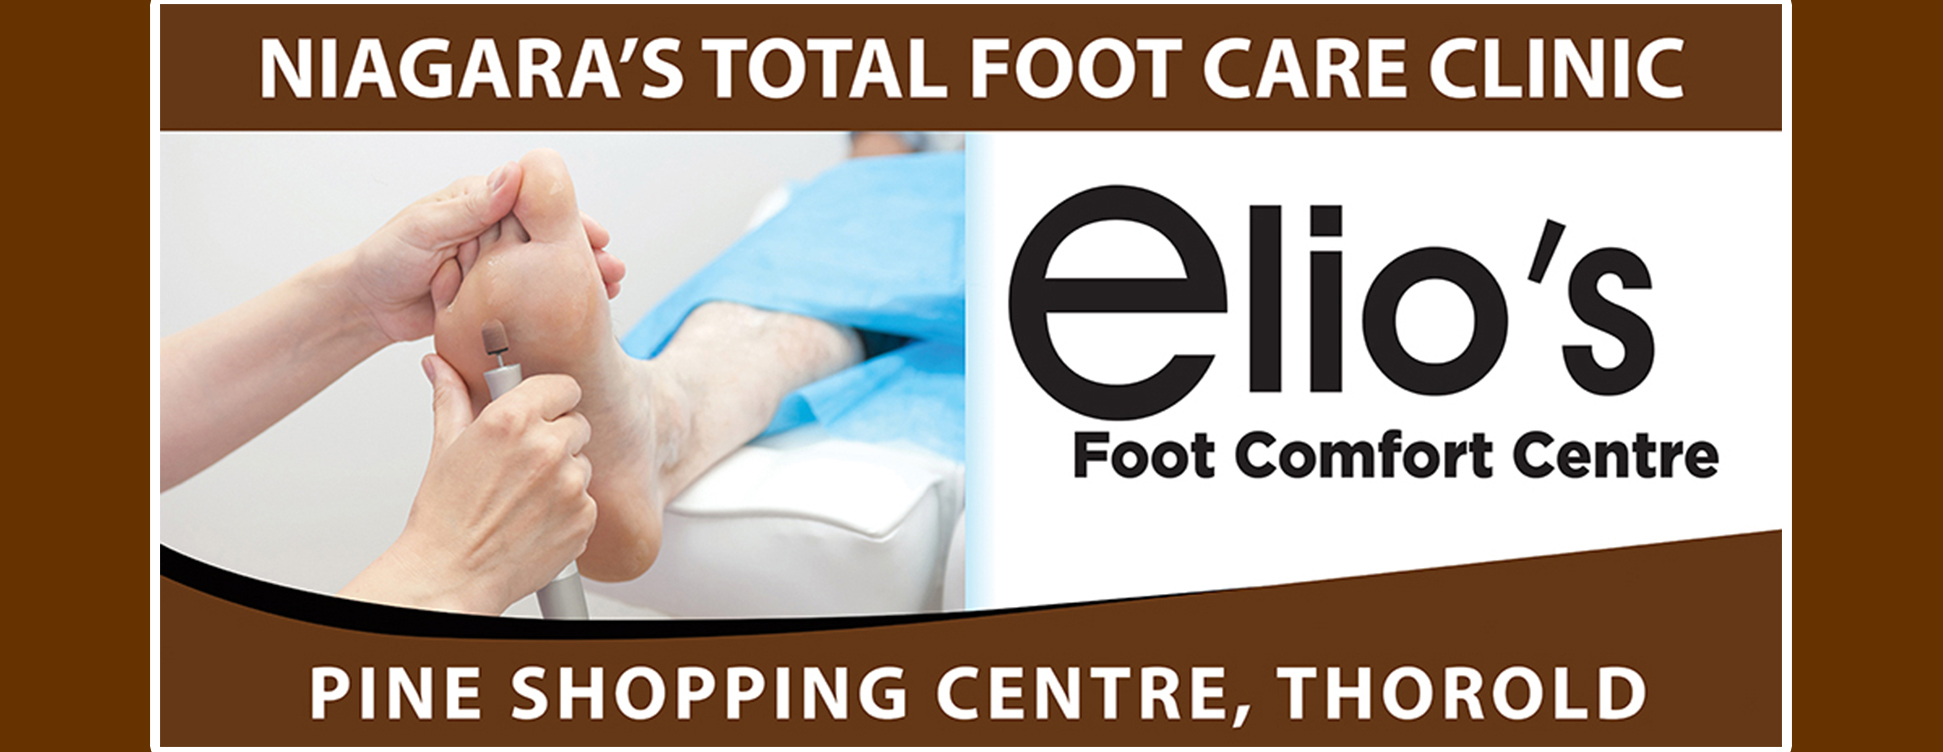 Niagara's Total Foot Care Clinic _ Elio's